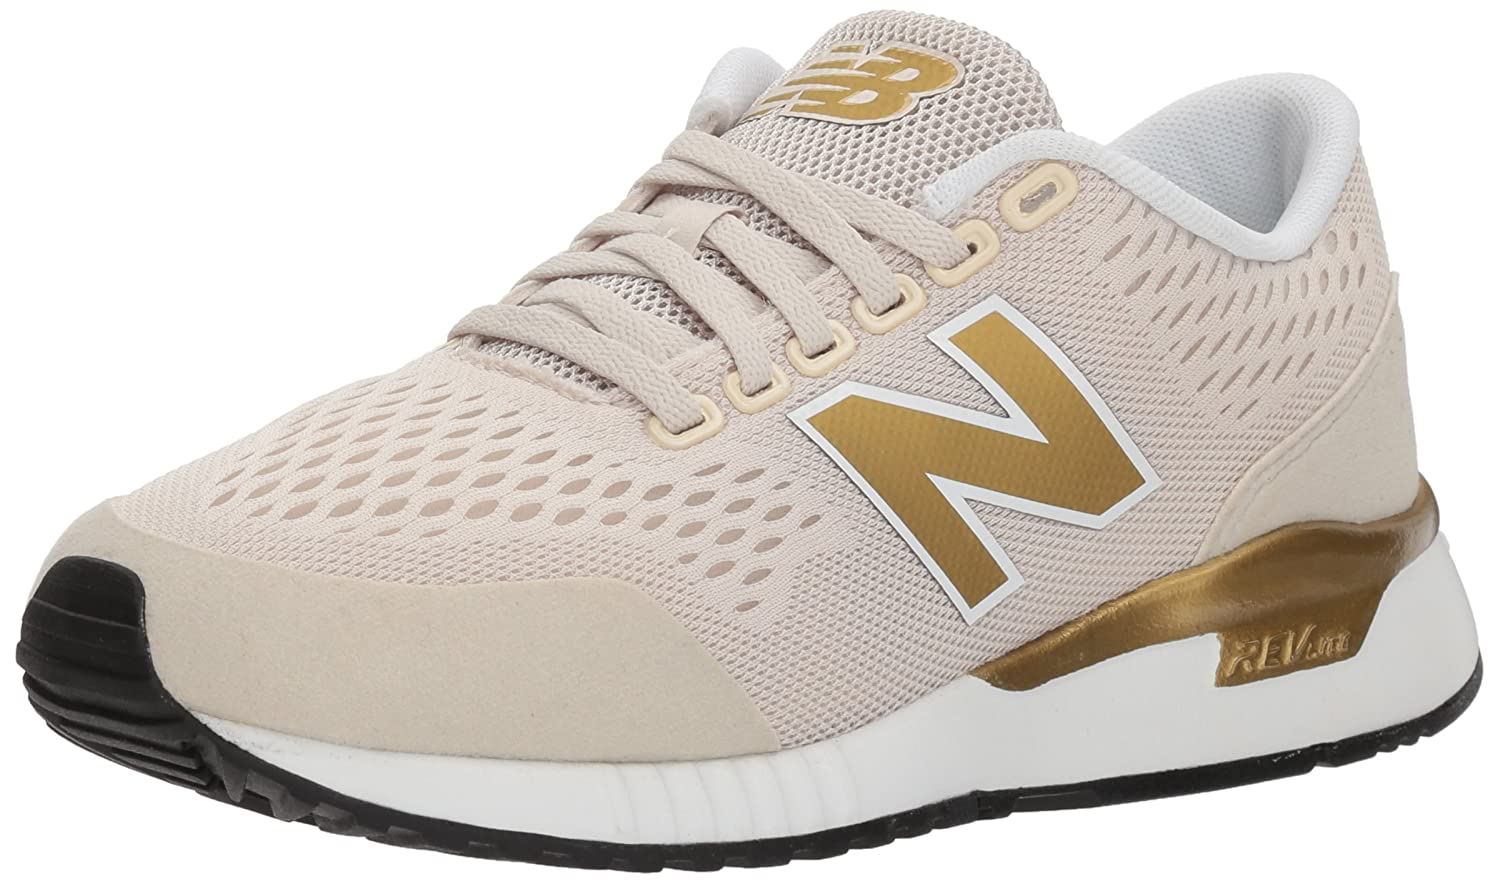 Men's/Women's New Balance B06XWYJ5FG Fashion Attractive Sneakers Excellent value Attractive Fashion fashion cheaper 72f800